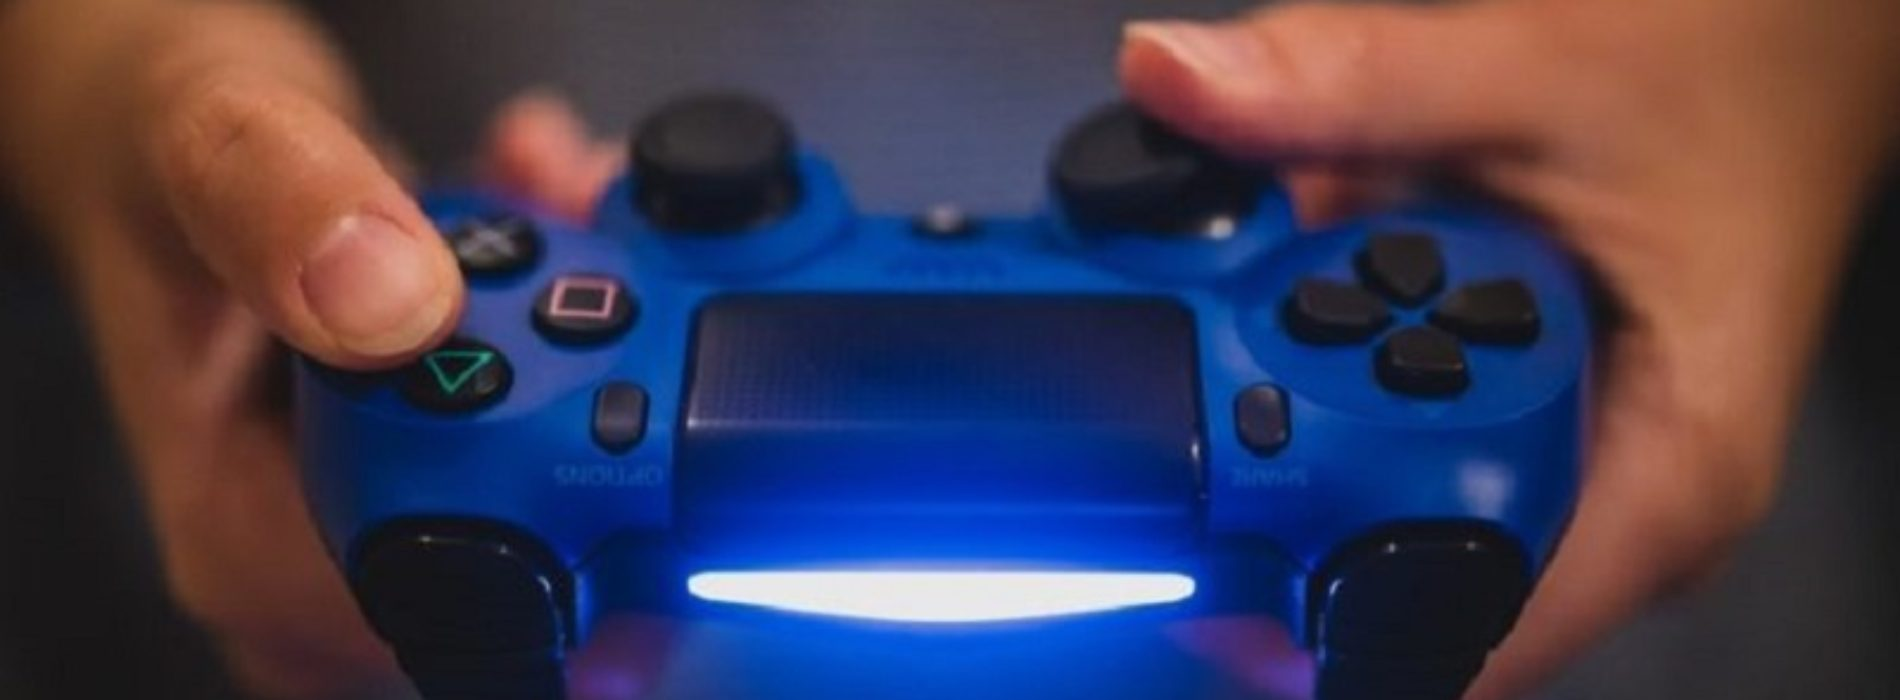 How accessible are PlayStation, Xbox and Nintendo for disabled gamers?